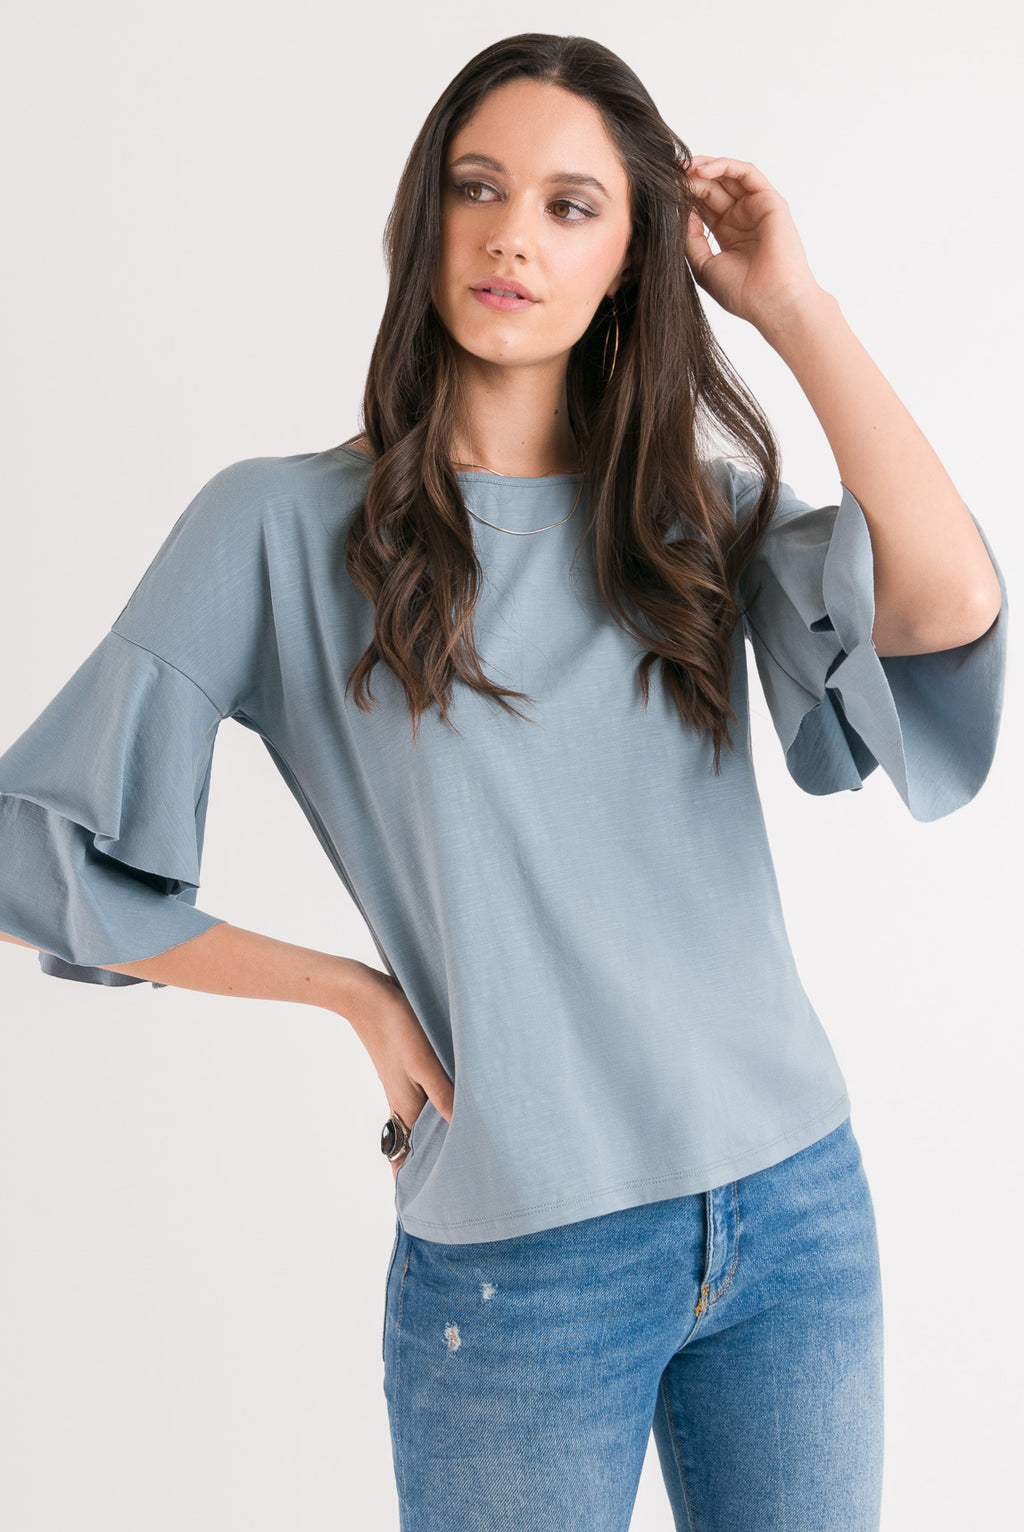 Flutter Casual Tee - Duck Egg